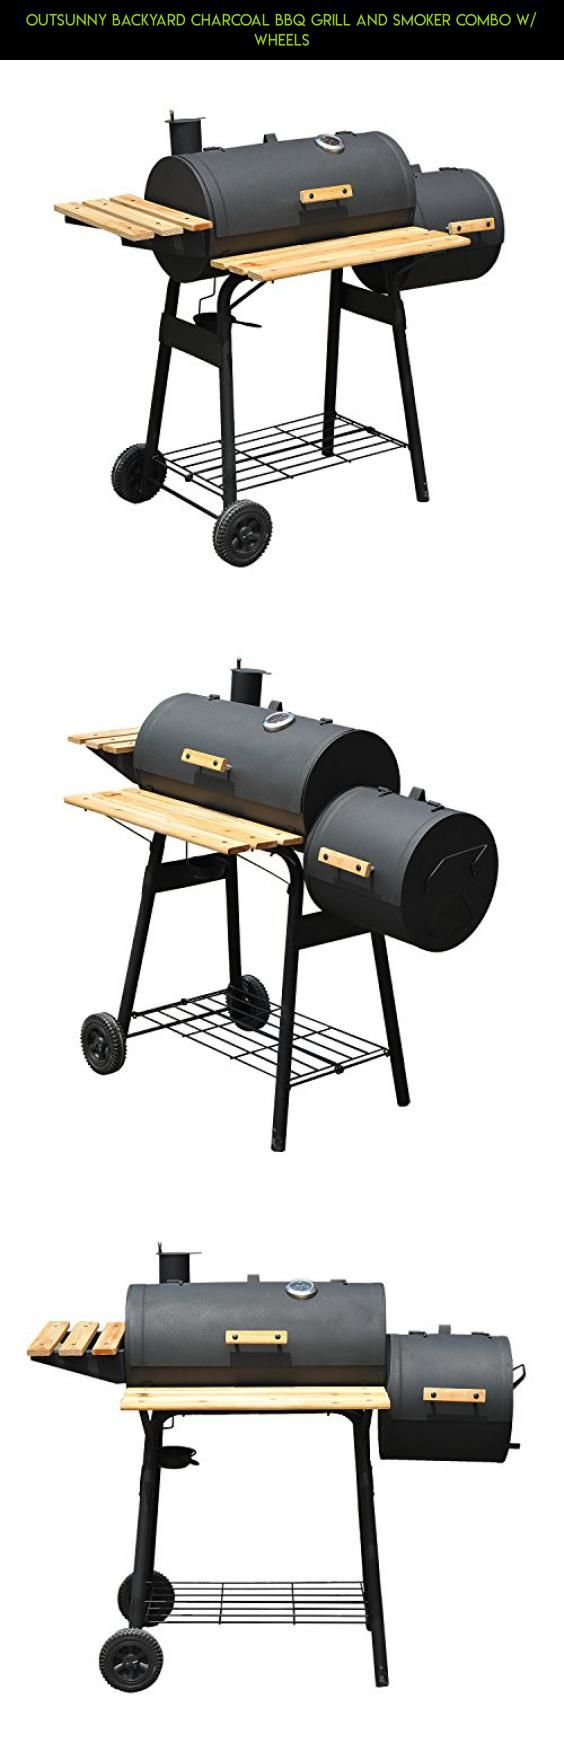 Outsunny Backyard Charcoal BBQ Grill and Smoker Combo w/ Wheels #plans #racing #tech #technology #products #shopping #drone #gadgets #grills #charcoal #bbq #parts #kit #fpv #camera